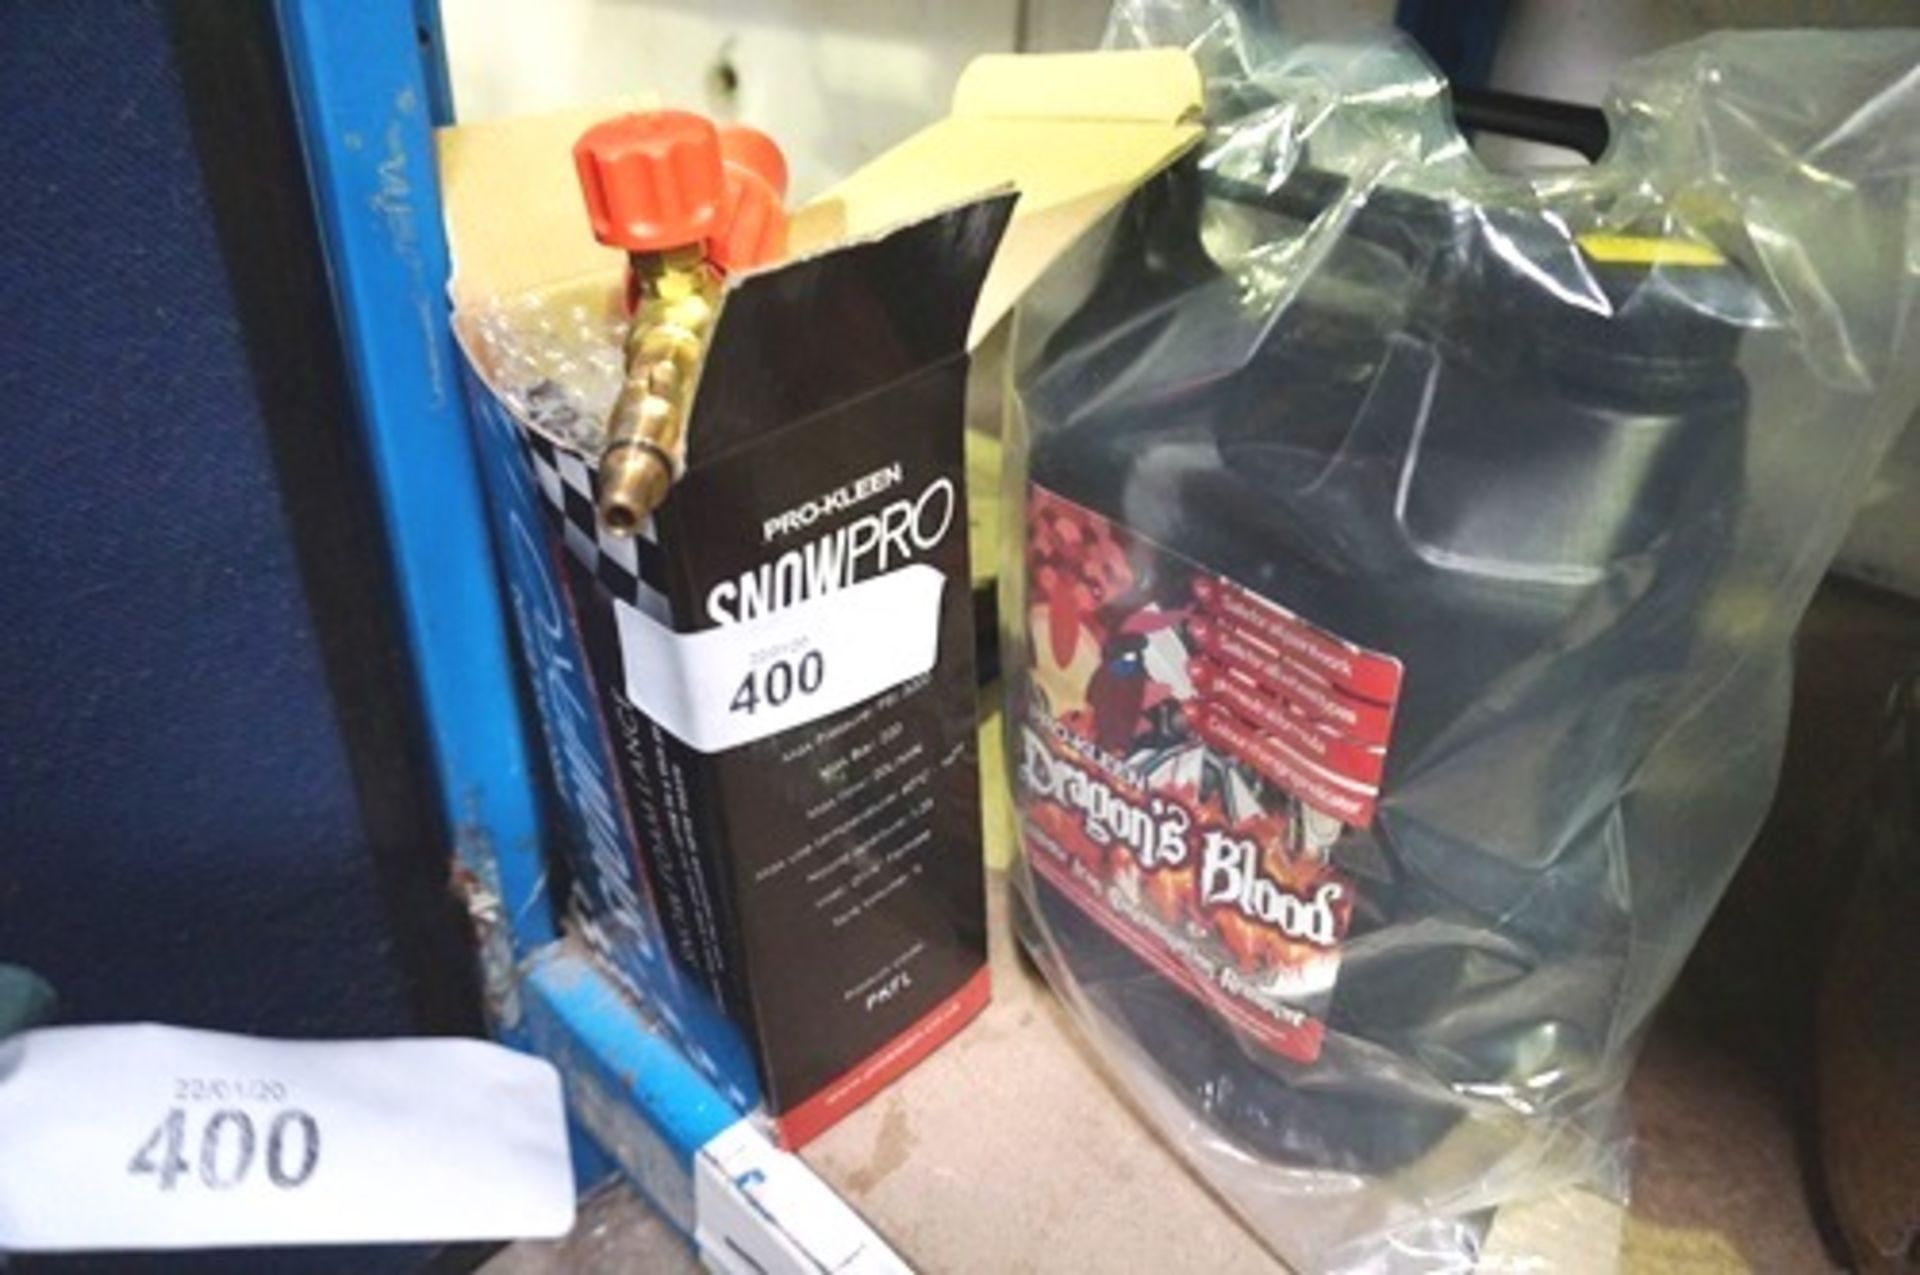 Lot 400 - Prokleen snow foam lance together with 5ltr snow foam and 5ltr Dragon Blood cleaner - Sealed new (